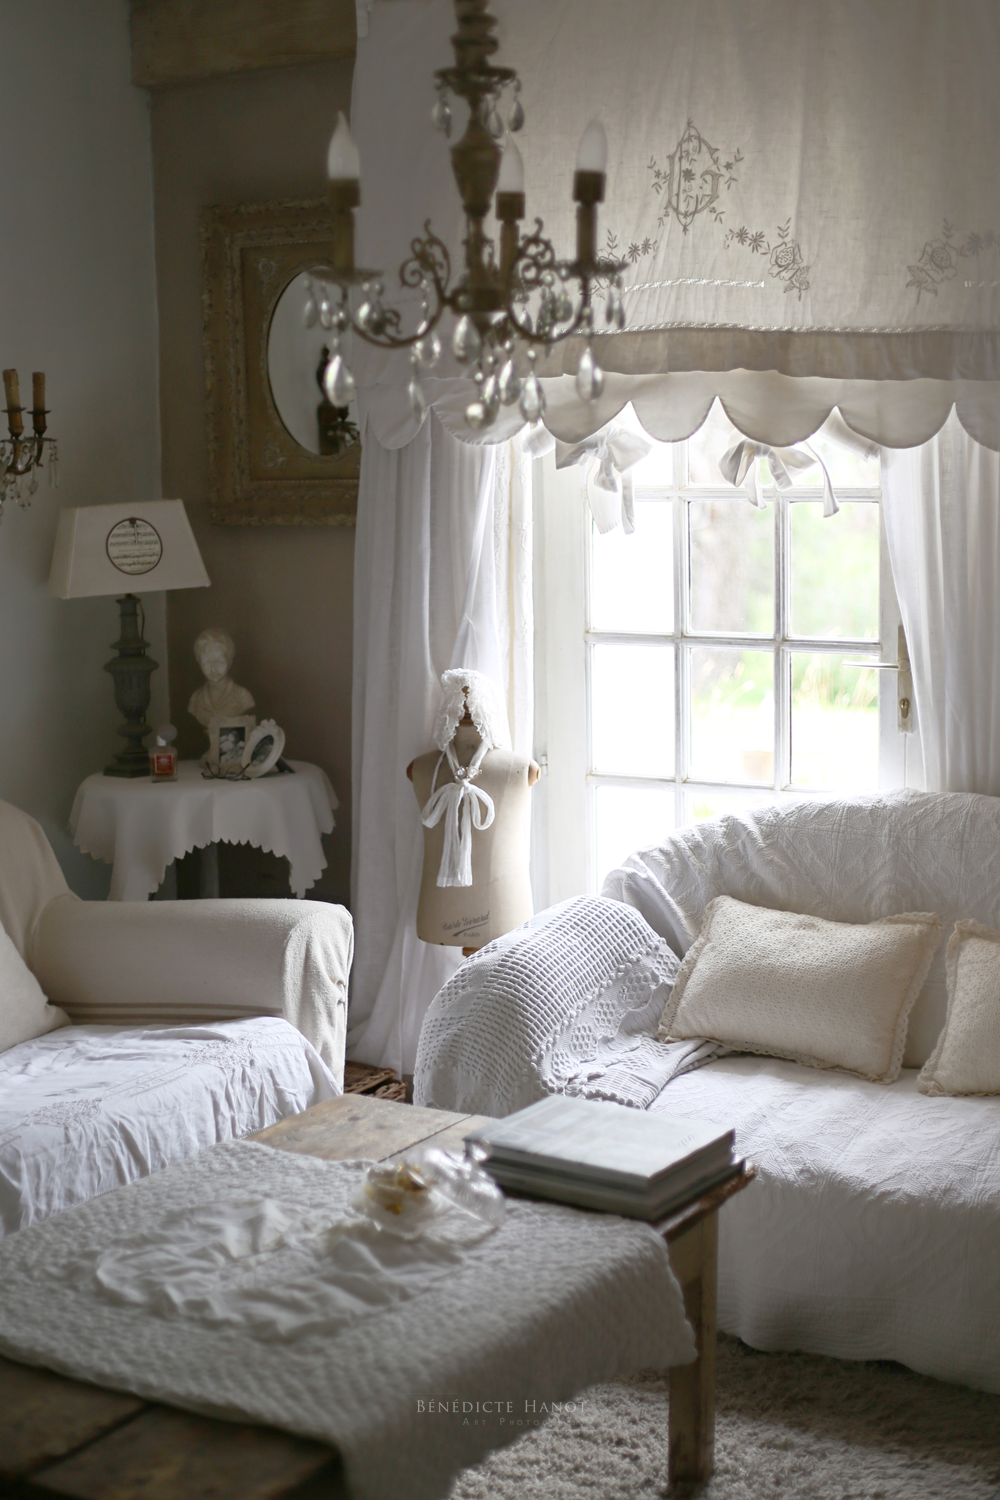 salon de charme salon romantique salon shabby chic le grenier d 39 alice. Black Bedroom Furniture Sets. Home Design Ideas